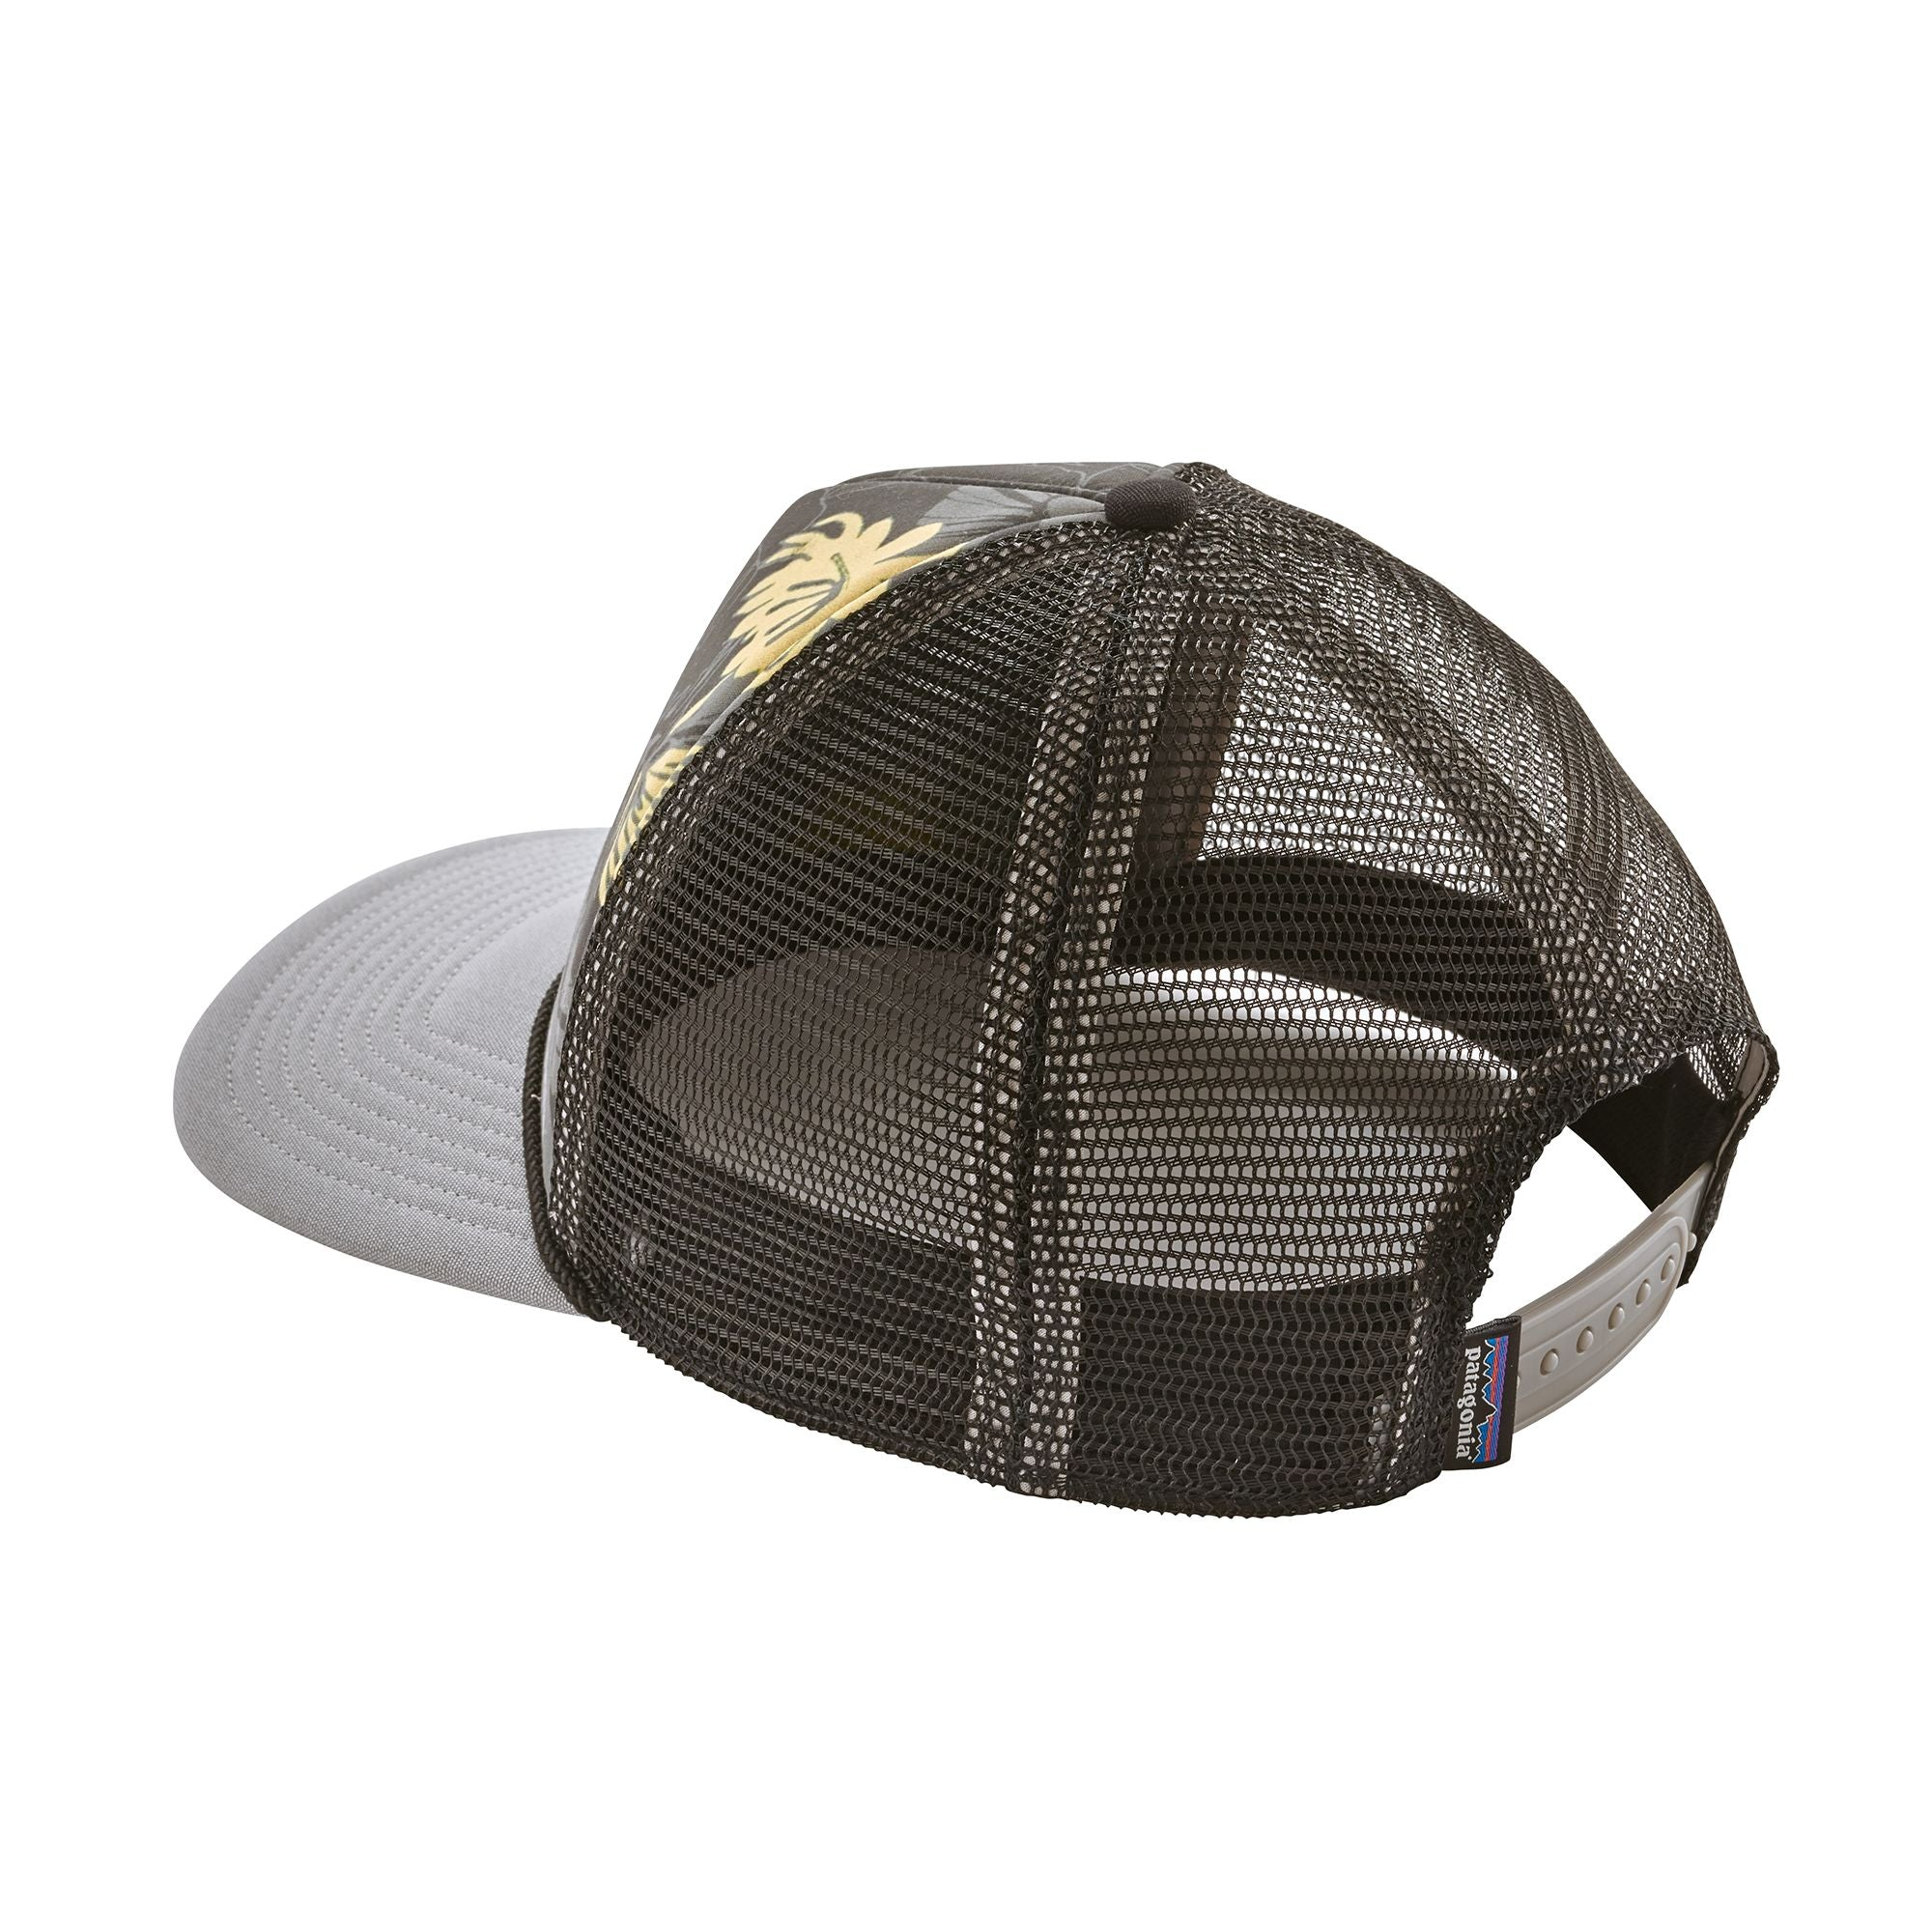 b6f6a4d824a CHILLOUT.NO - Patagonia - Wave Worn Interstate Hat - Reise Friluft ...